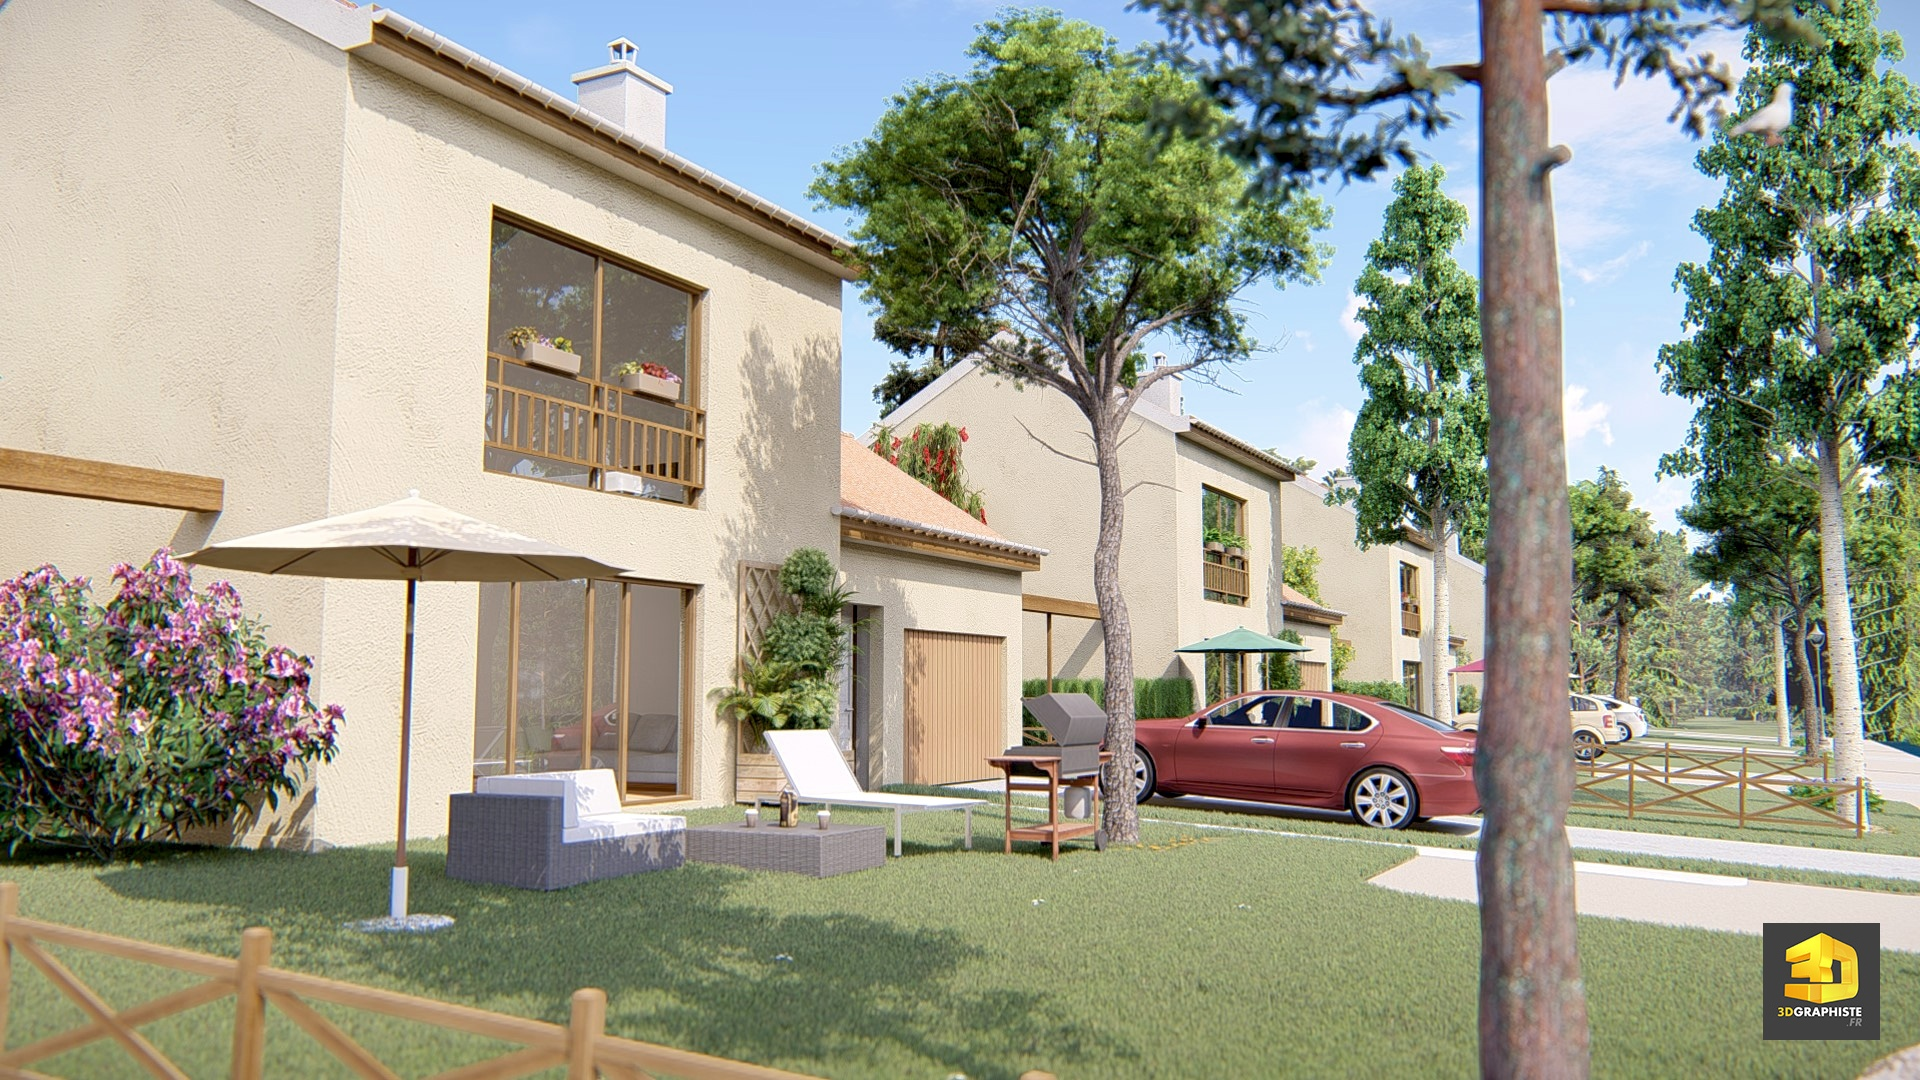 Cr ation d 39 une perspective 3d lotissement et maisons for Architecture 3d maison